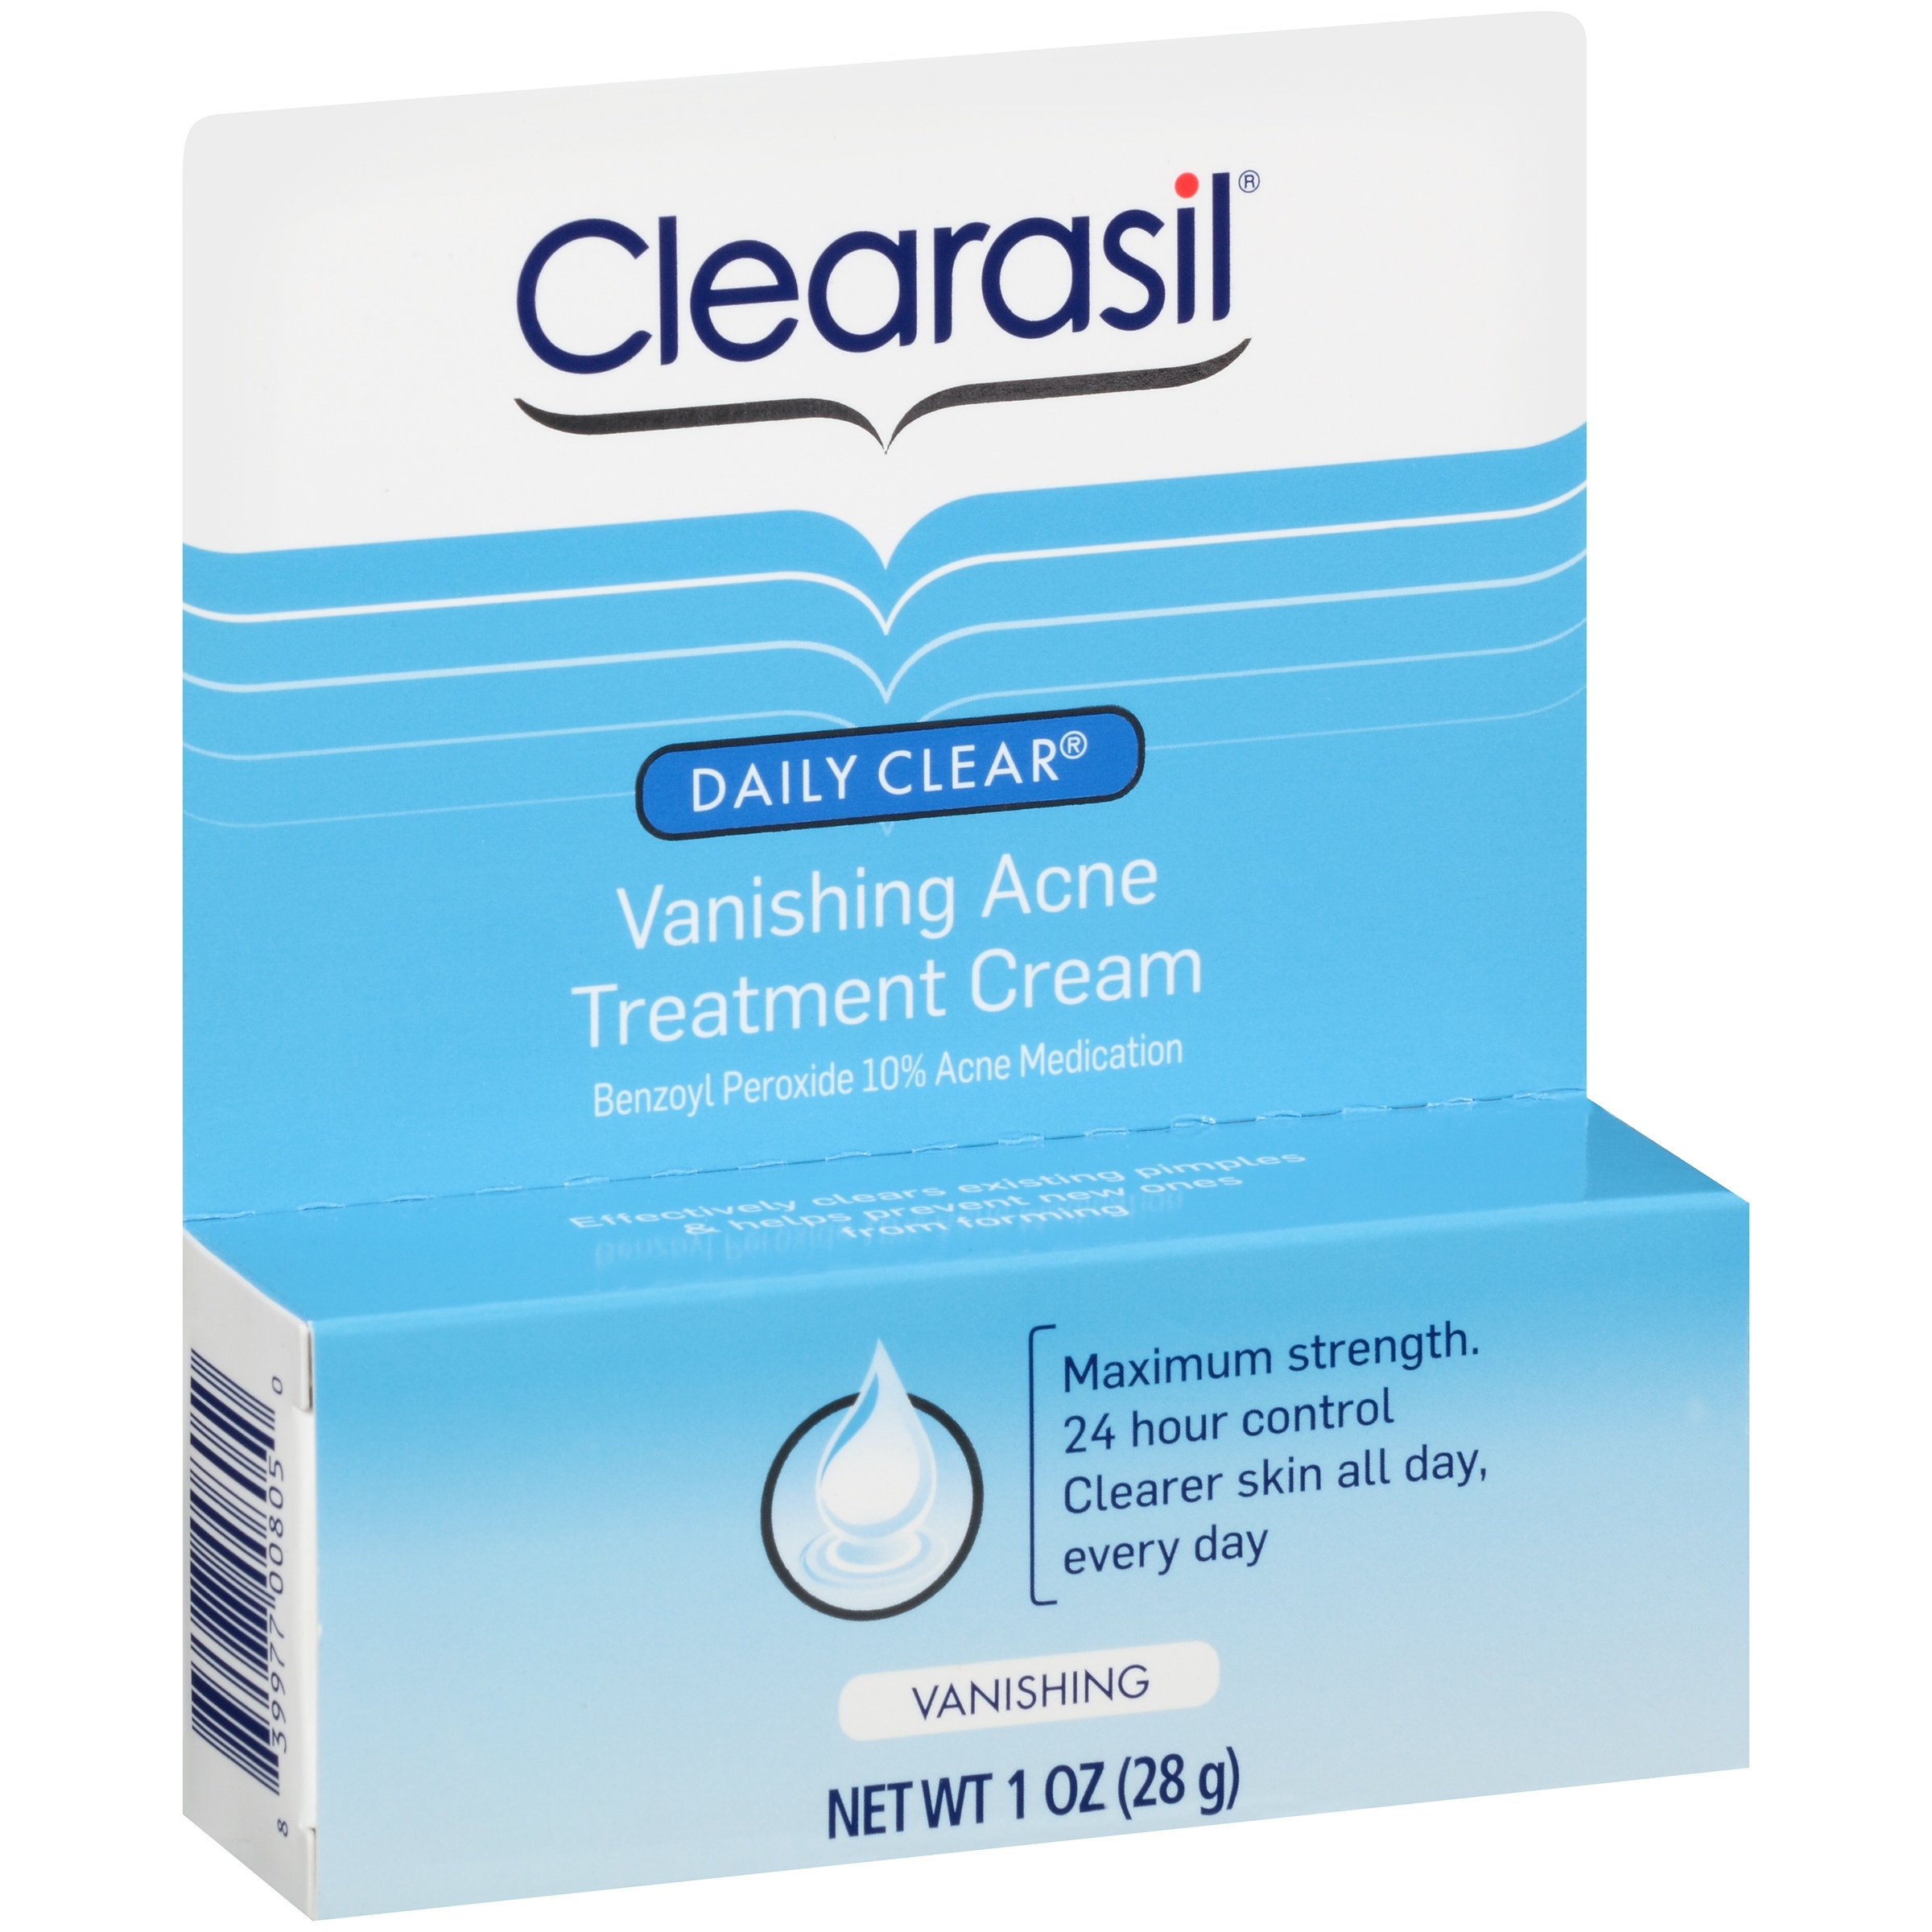 Clearasil Daily Clear Vanishing Acne Treatment Cream, 1 Ounce by Reckitt Benckiser